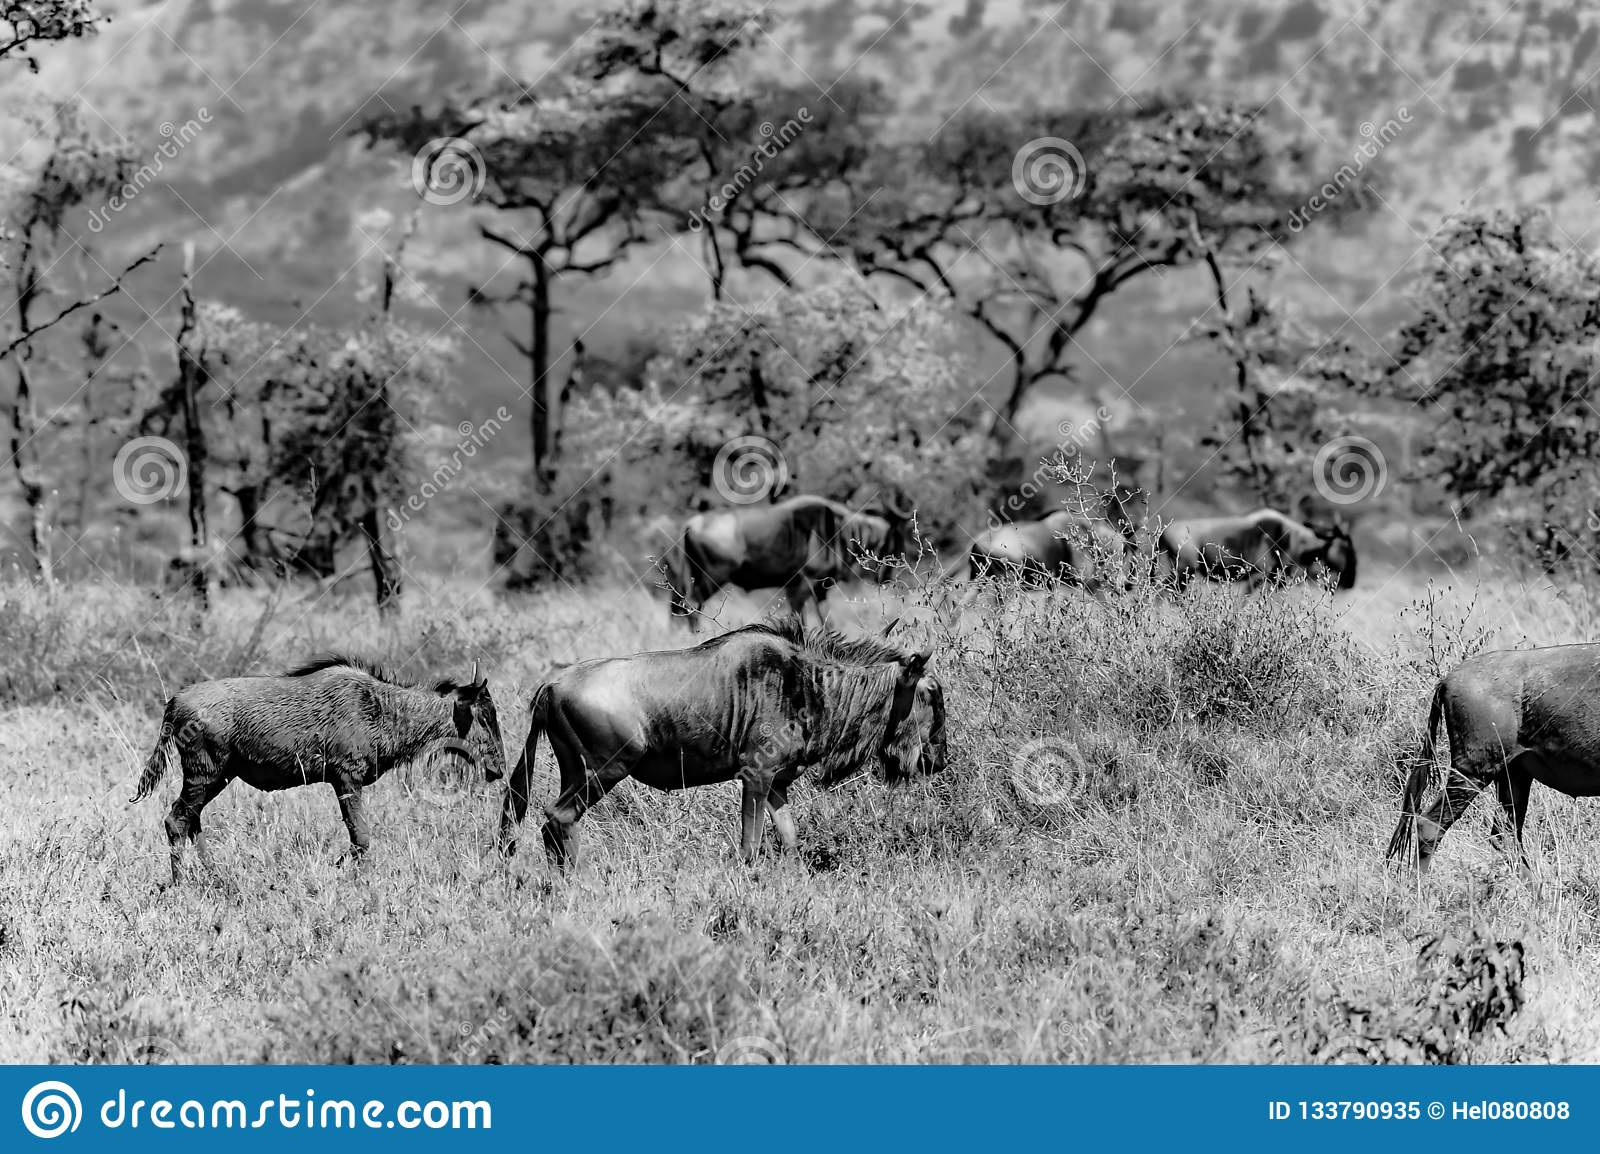 Wildebeest in tanzania africa black and white photograph